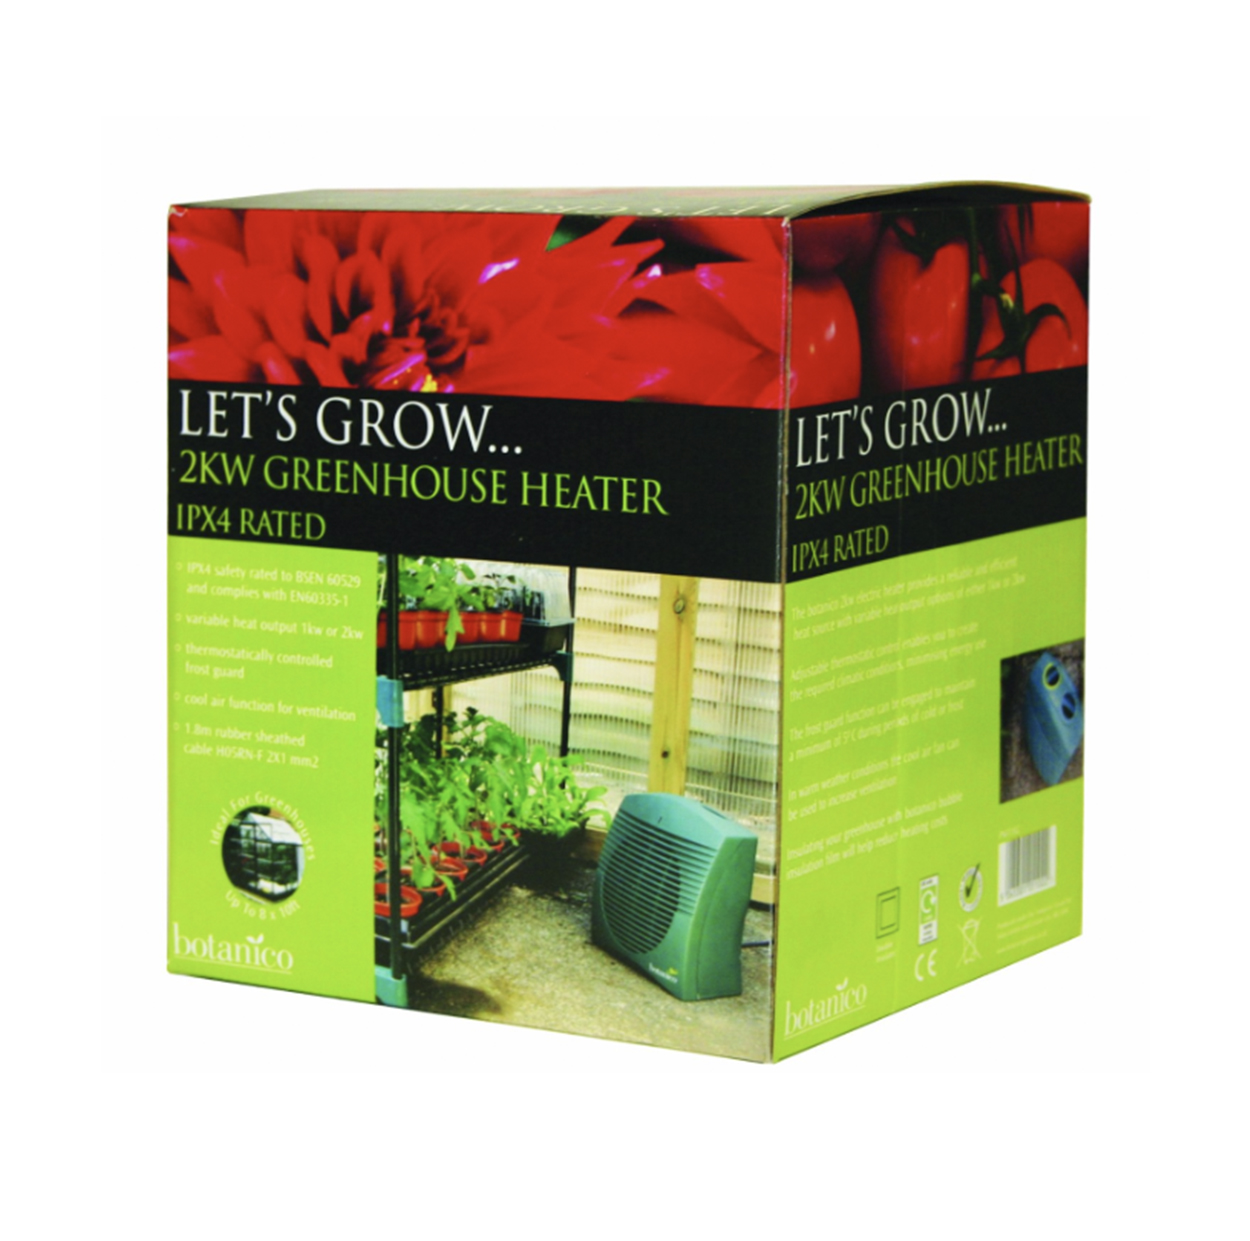 lets grow 2kw greenhouse heater